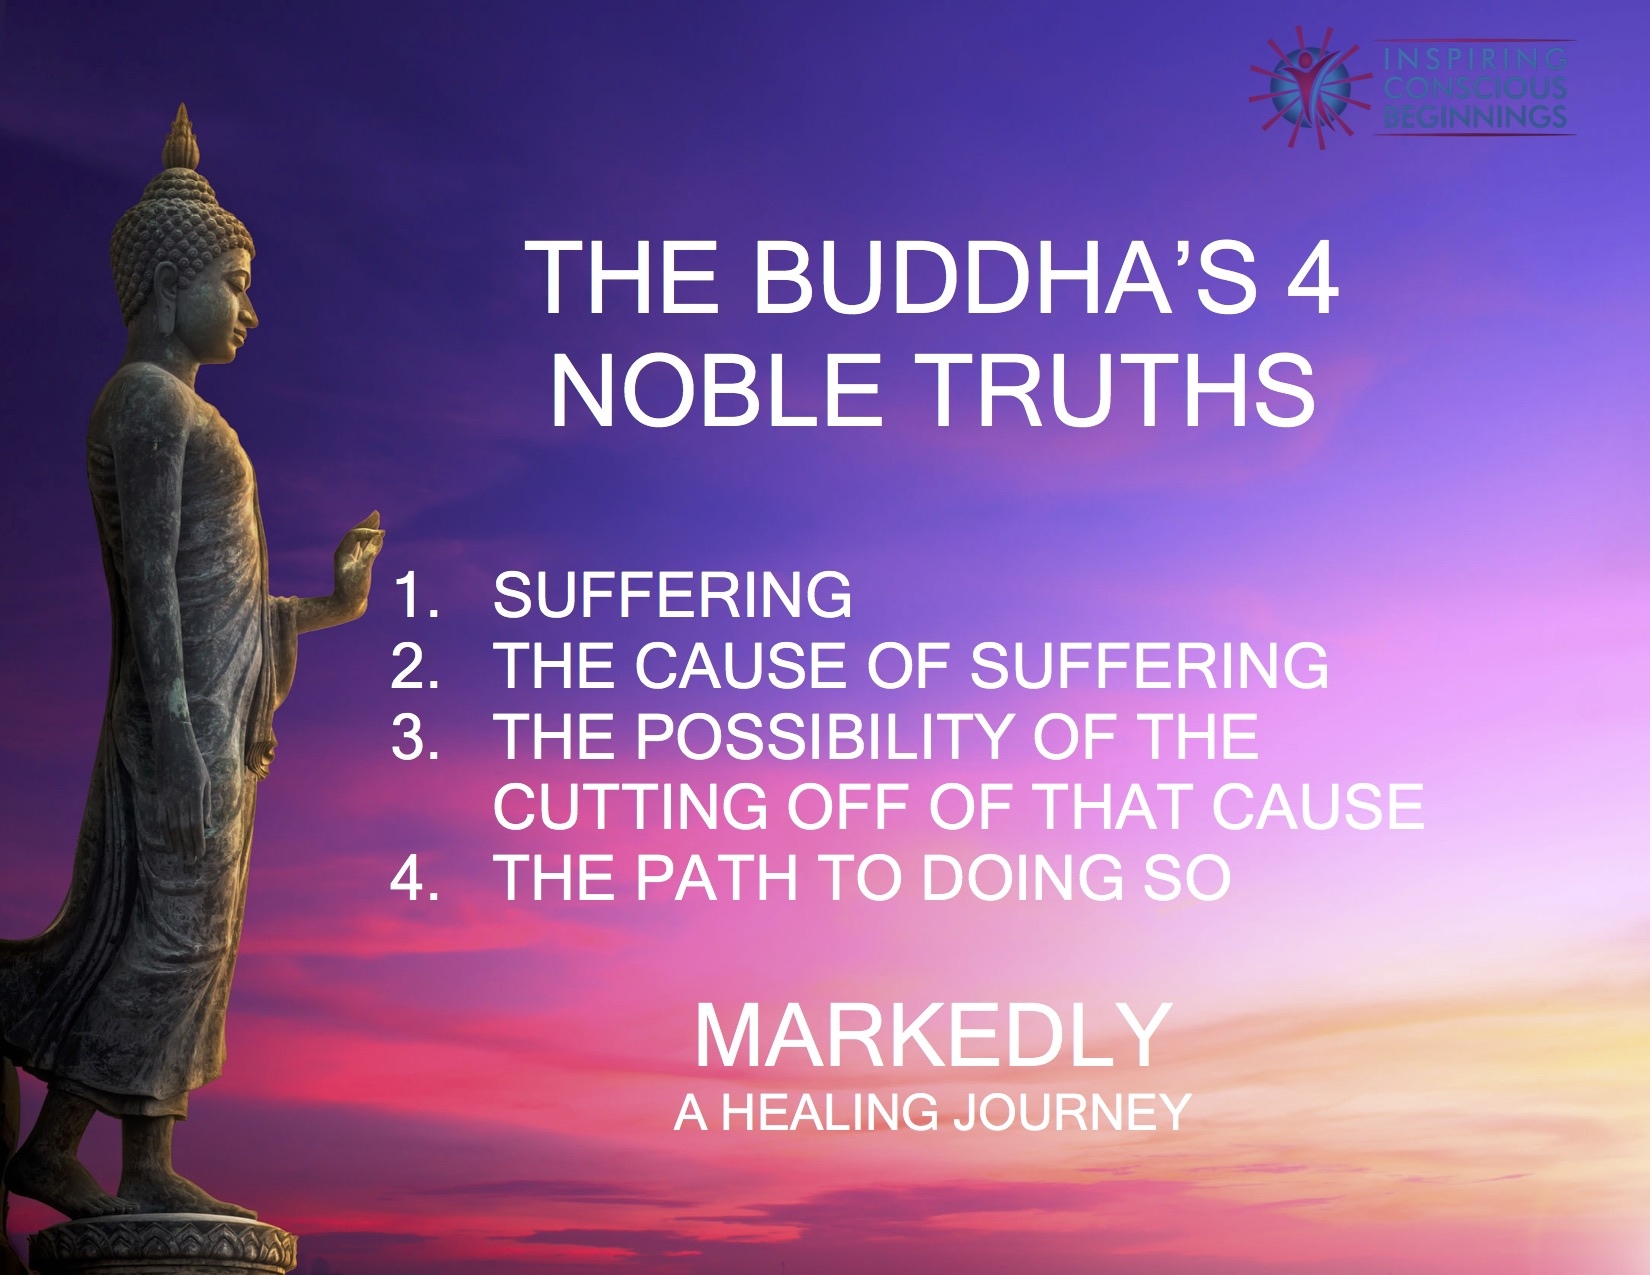 the four basic truths involved in buddhism The four noble truths refer to and express the basic orientation of buddhism in a short expression: we crave and cling to impermanent states and things, which are dukkha.